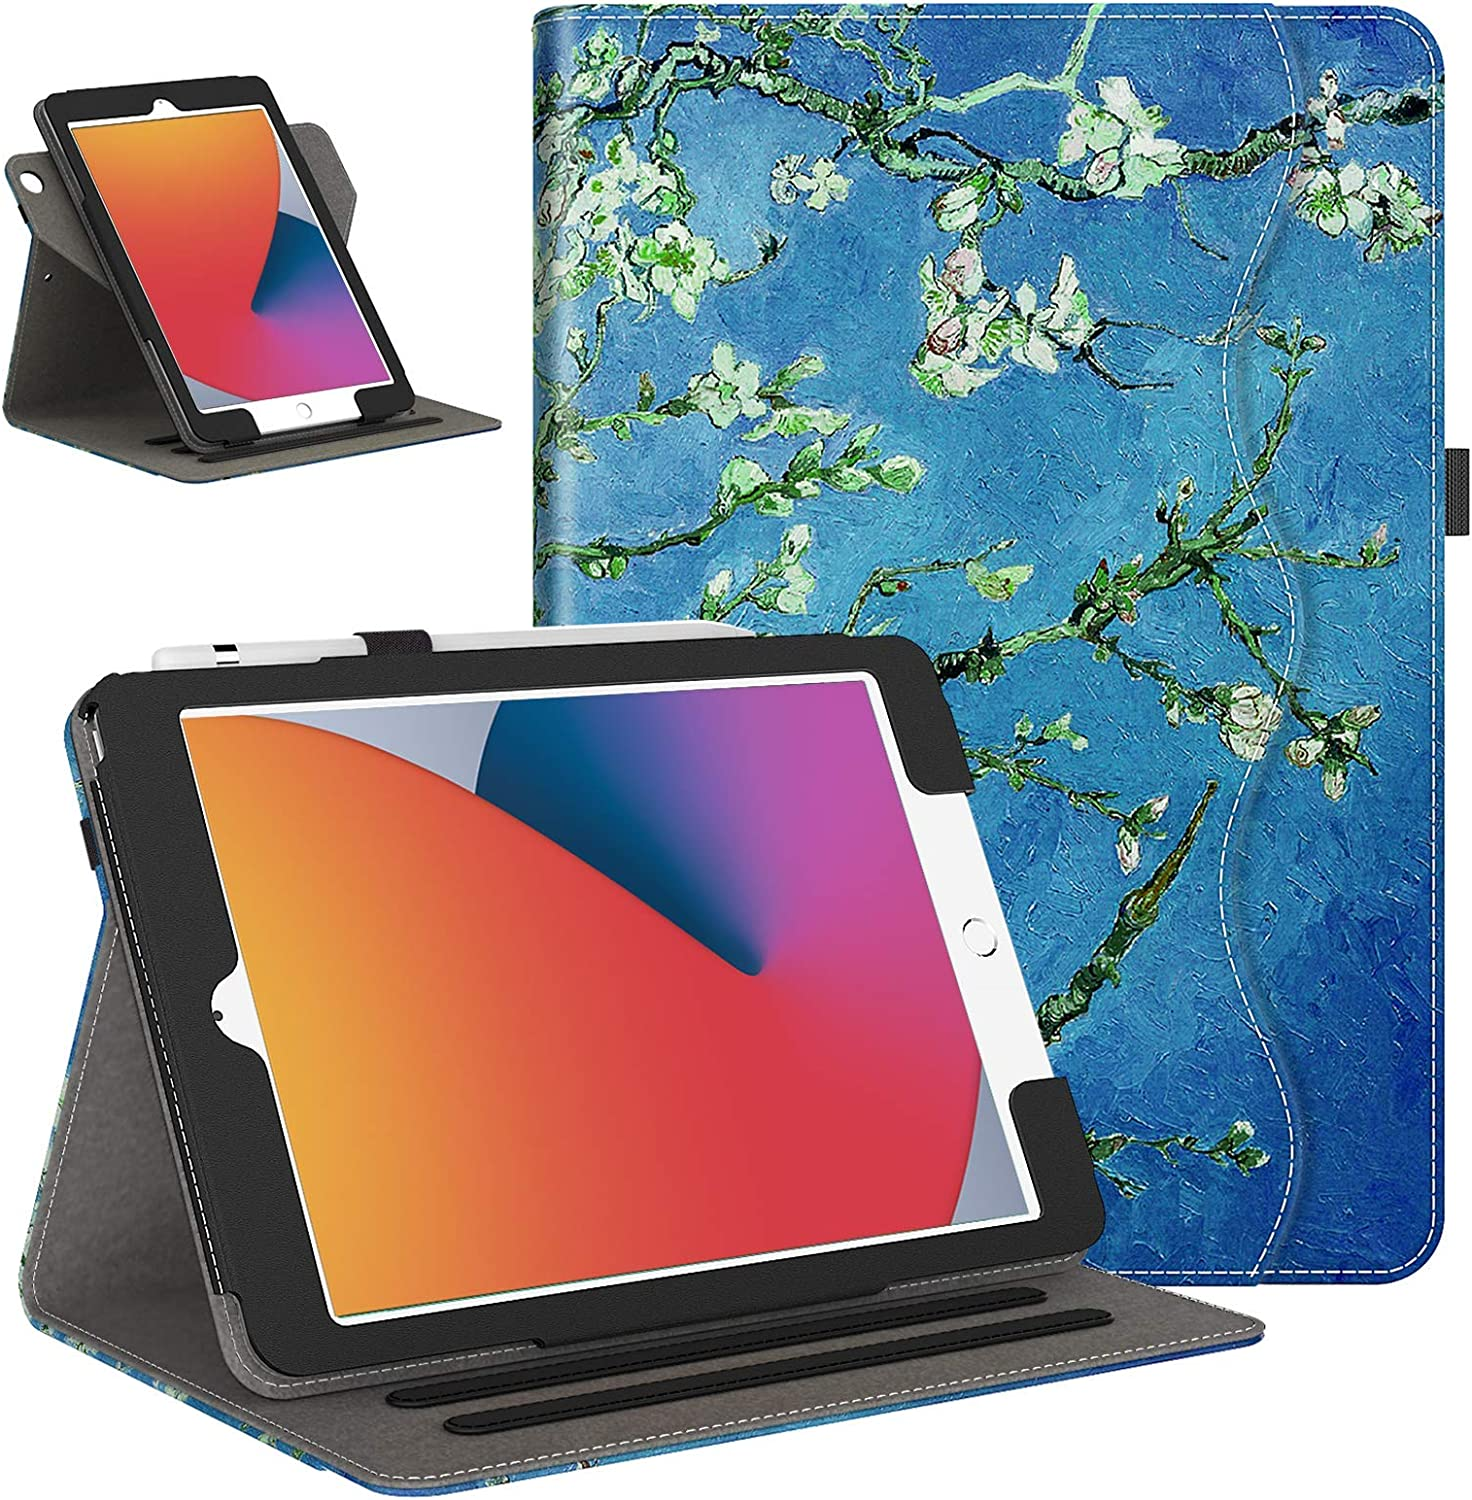 IKEVER iPad 10.2 Case 2020 8th Generation / 2019 iPad 7th Gen Case with 360 Degree Rotating, Shockproof Smart Cover for iPad 10.2 Inch, Apricot blossom